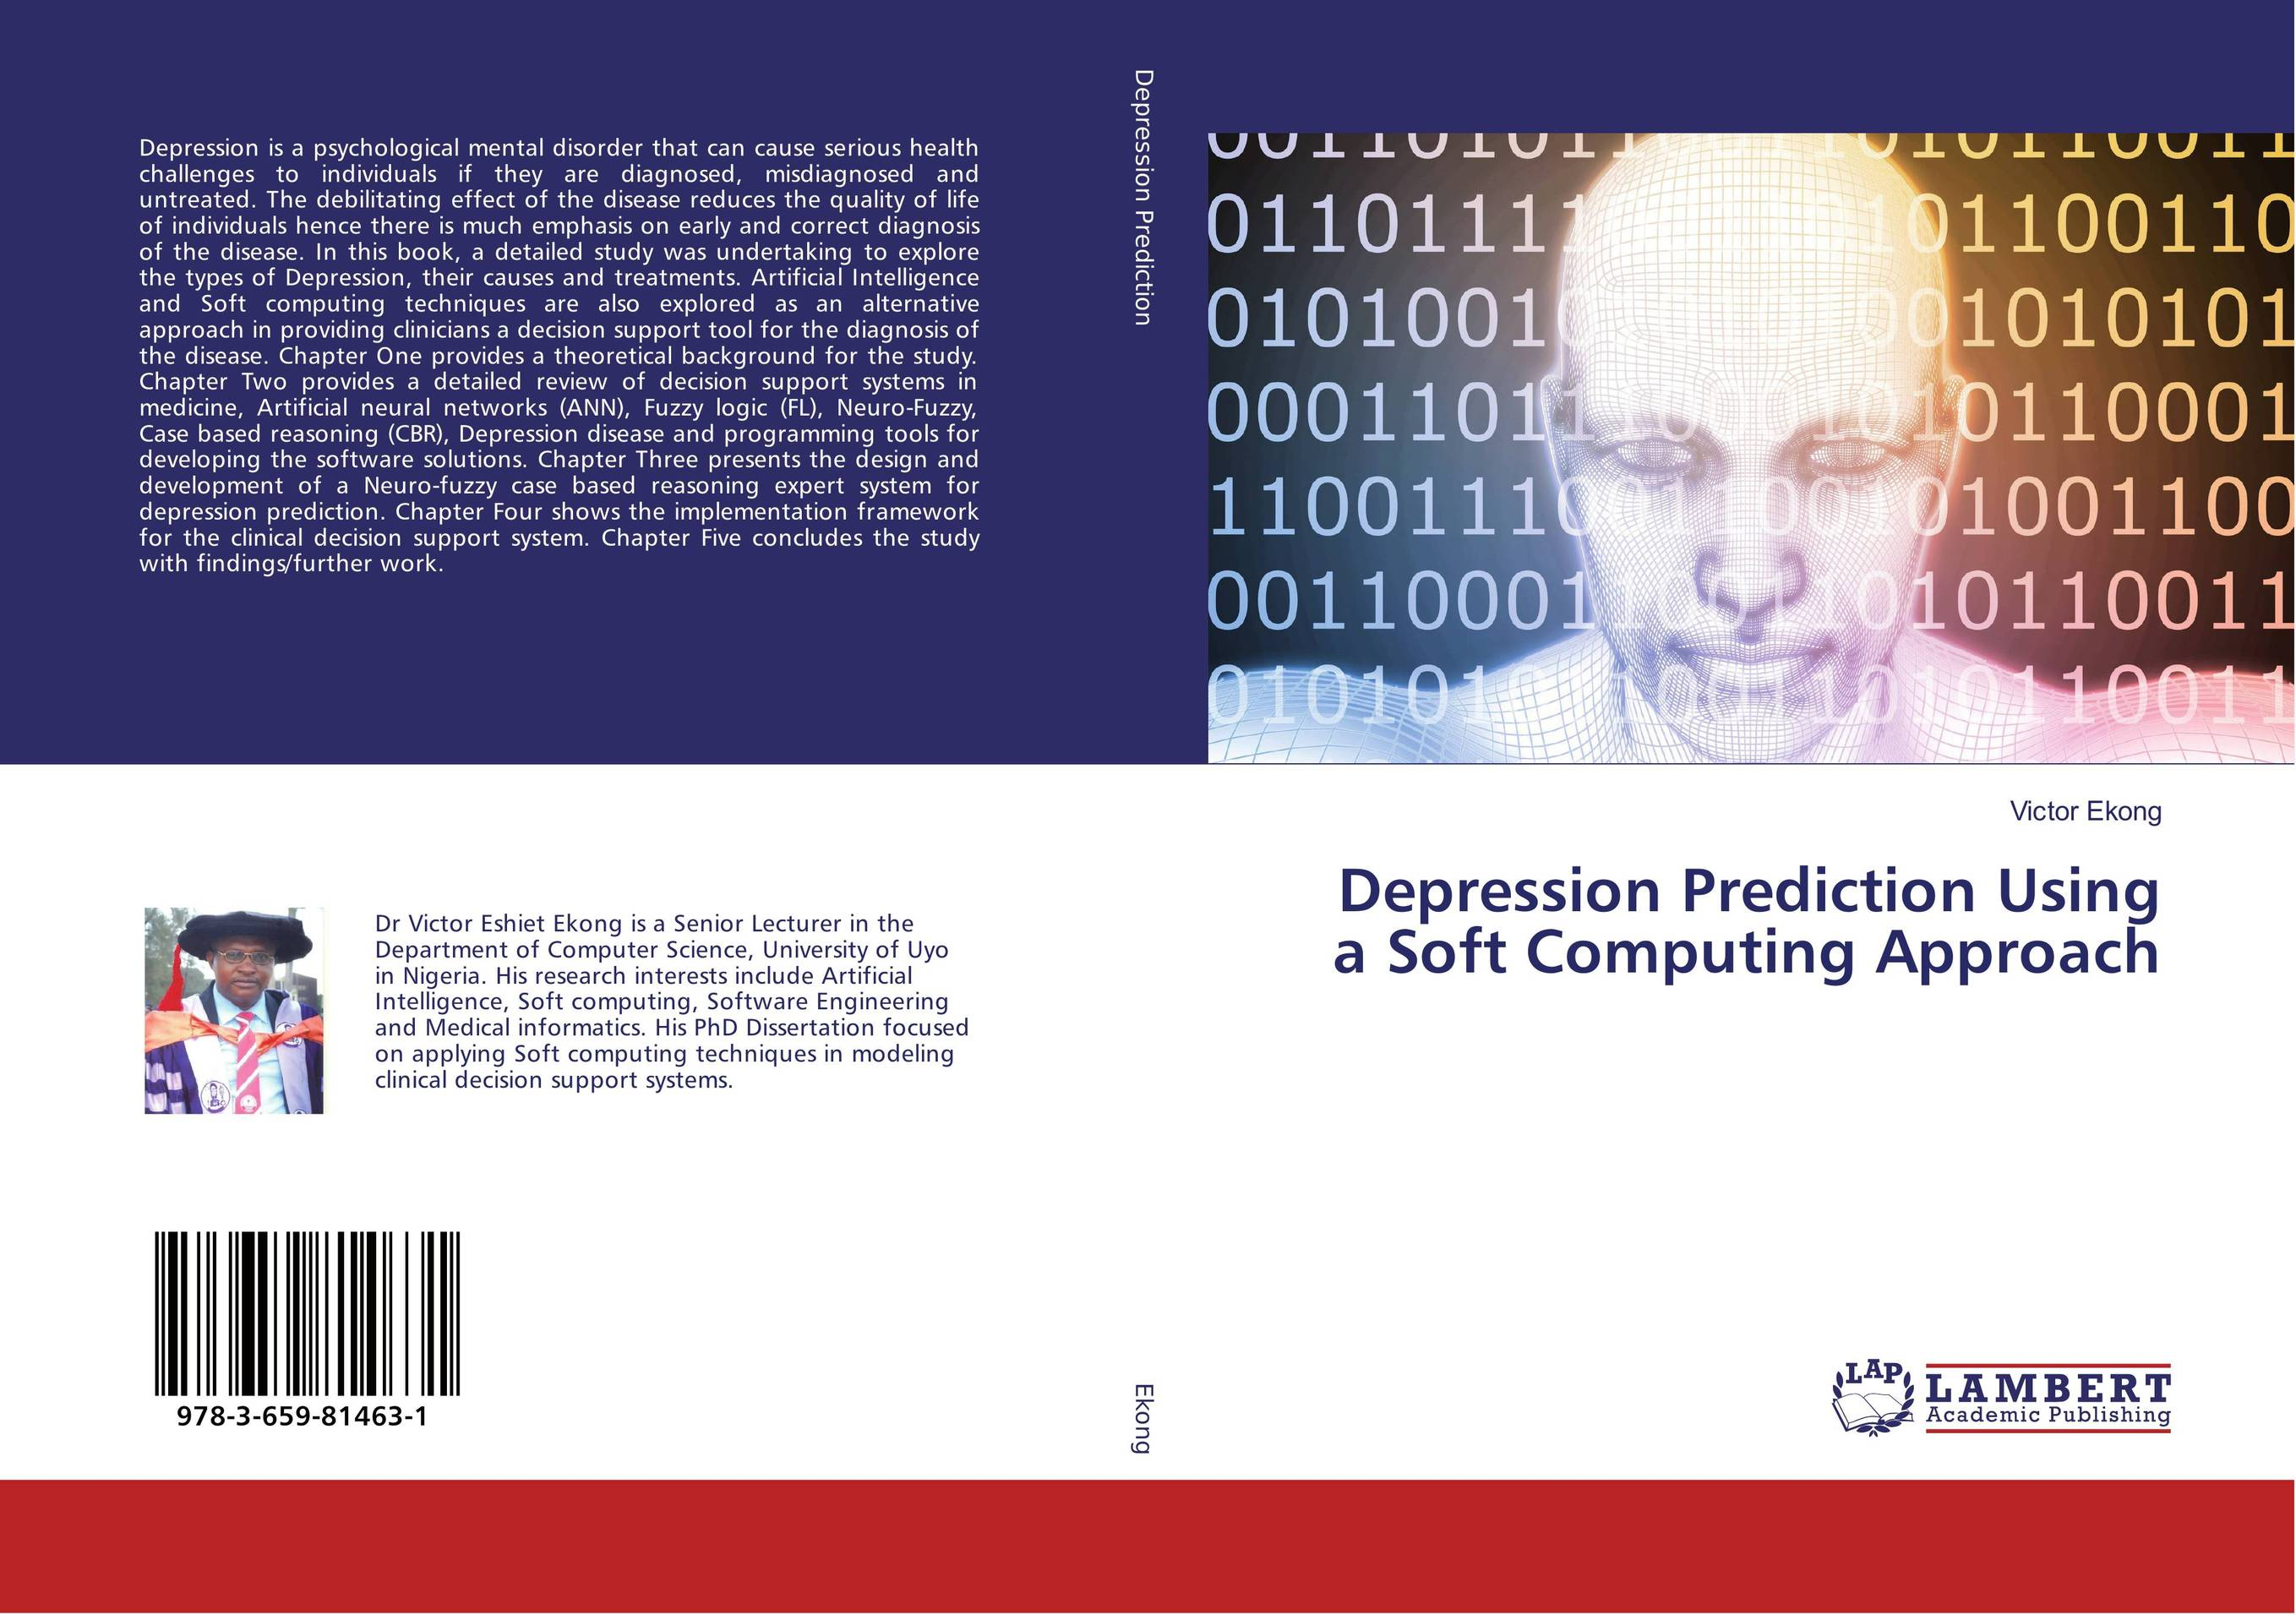 Depression Prediction Using a Soft Computing Approach aygun nusrat alasgarova financial risk forecasting using neuro fuzzy approach